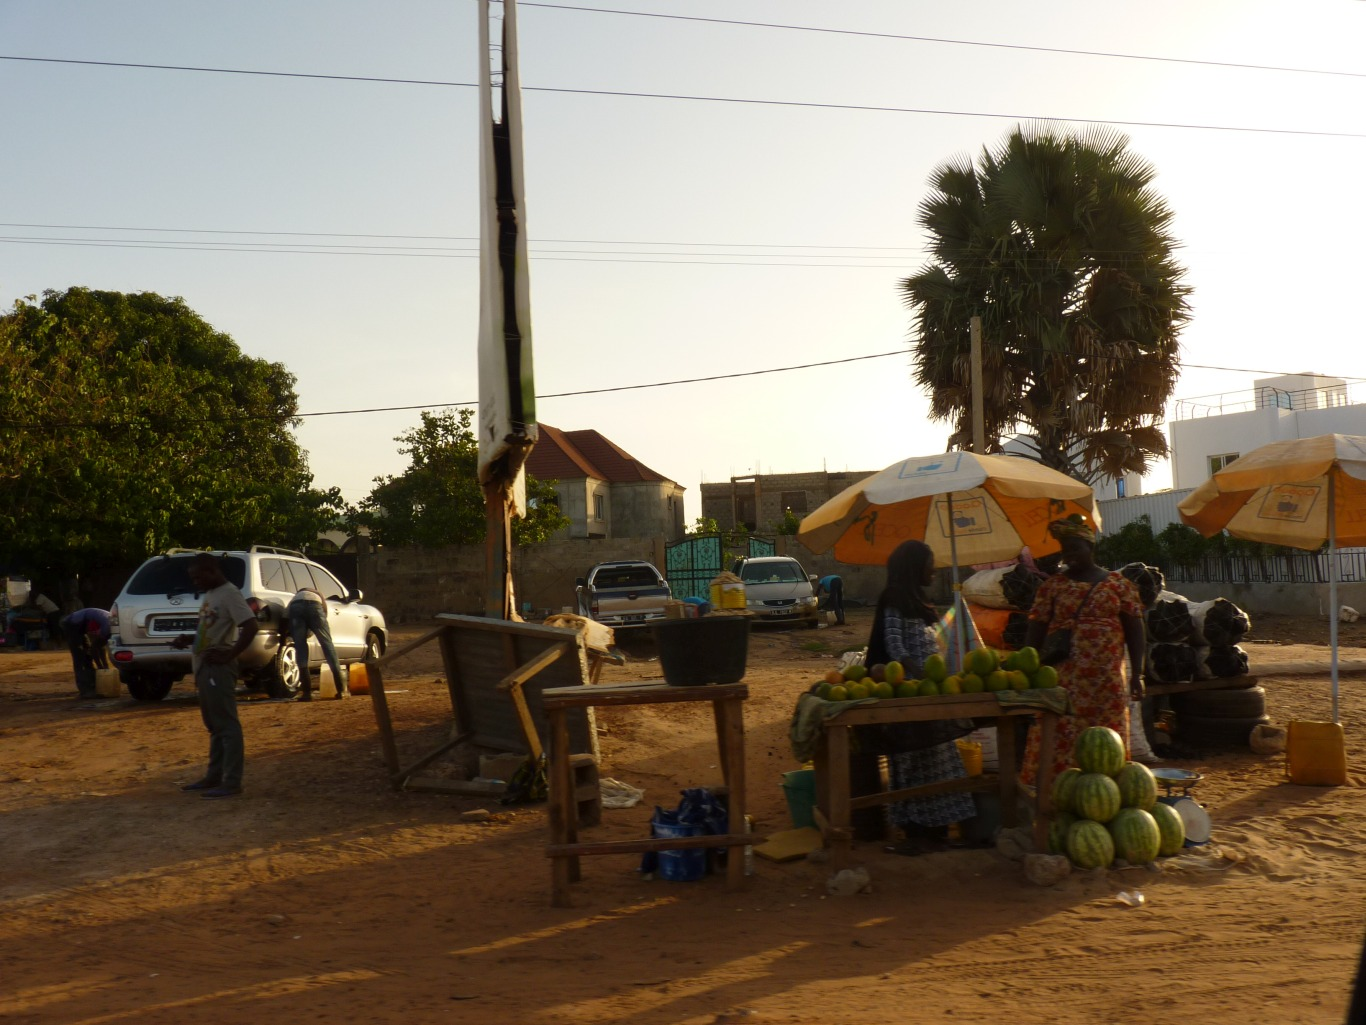 Gambia163